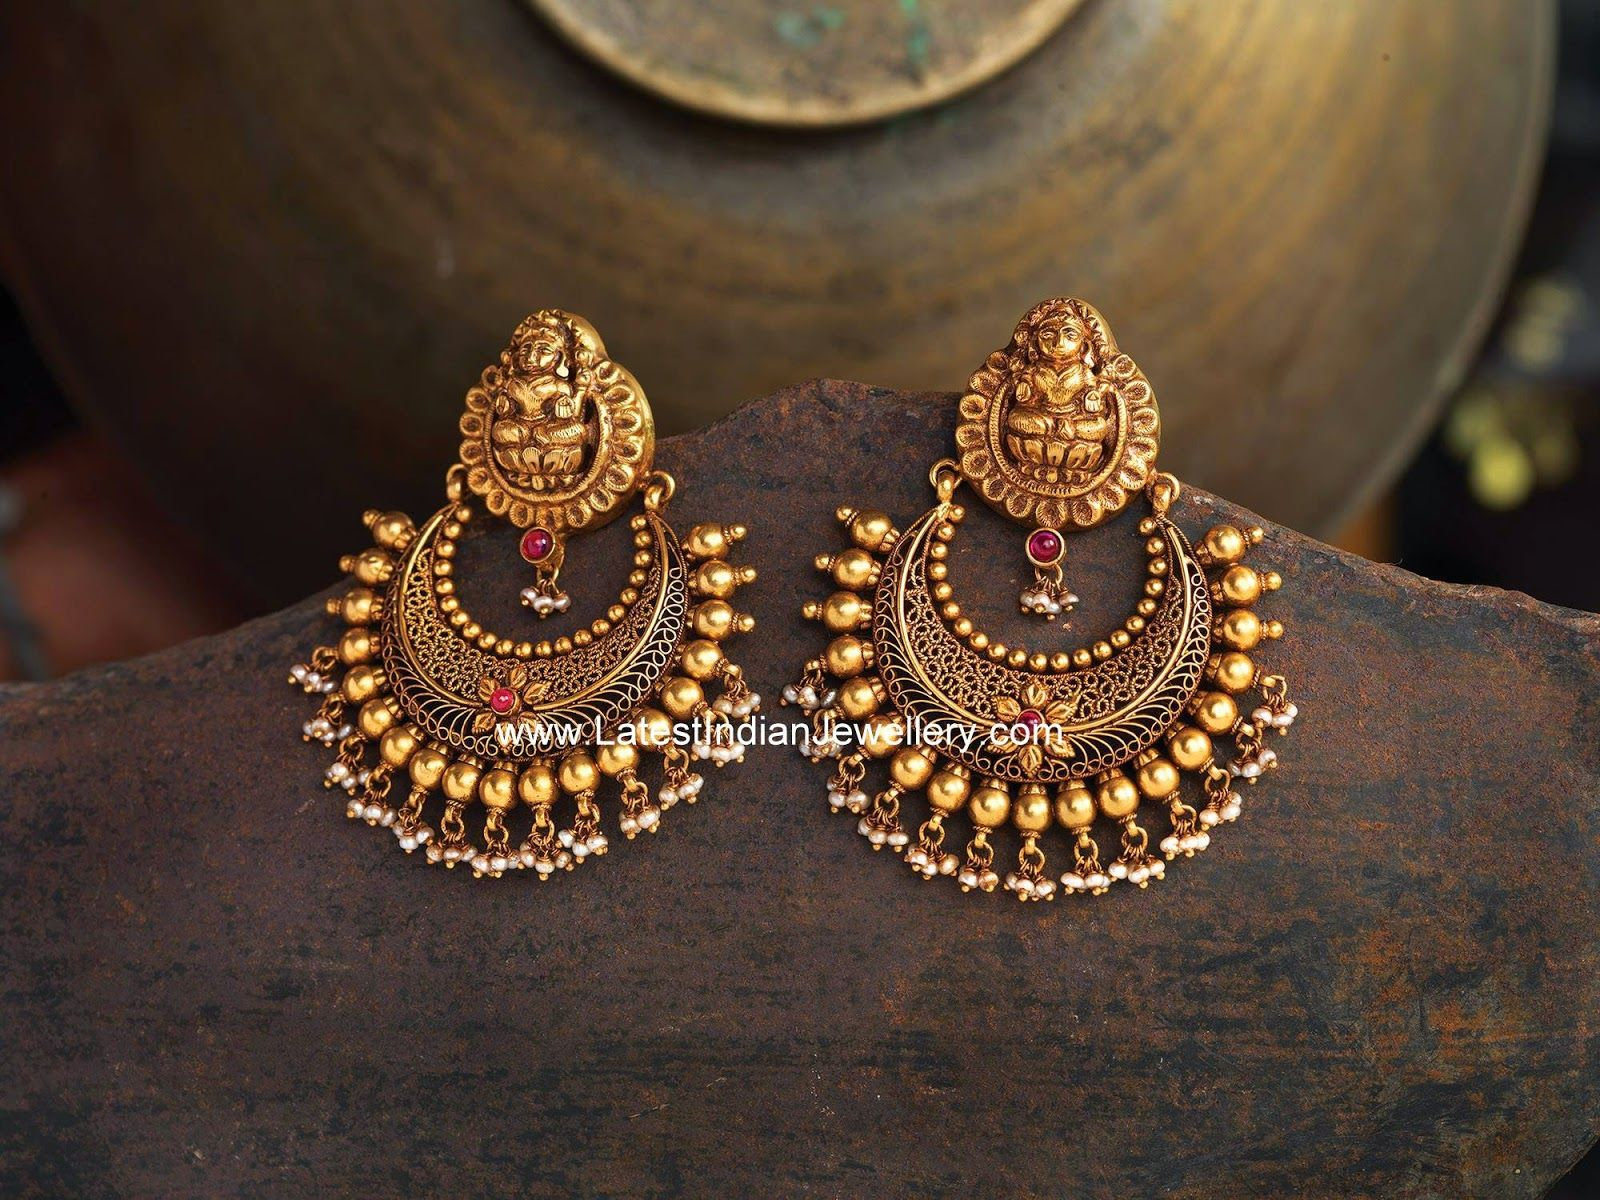 Lakshmi Design Antique Gold Chand Bali